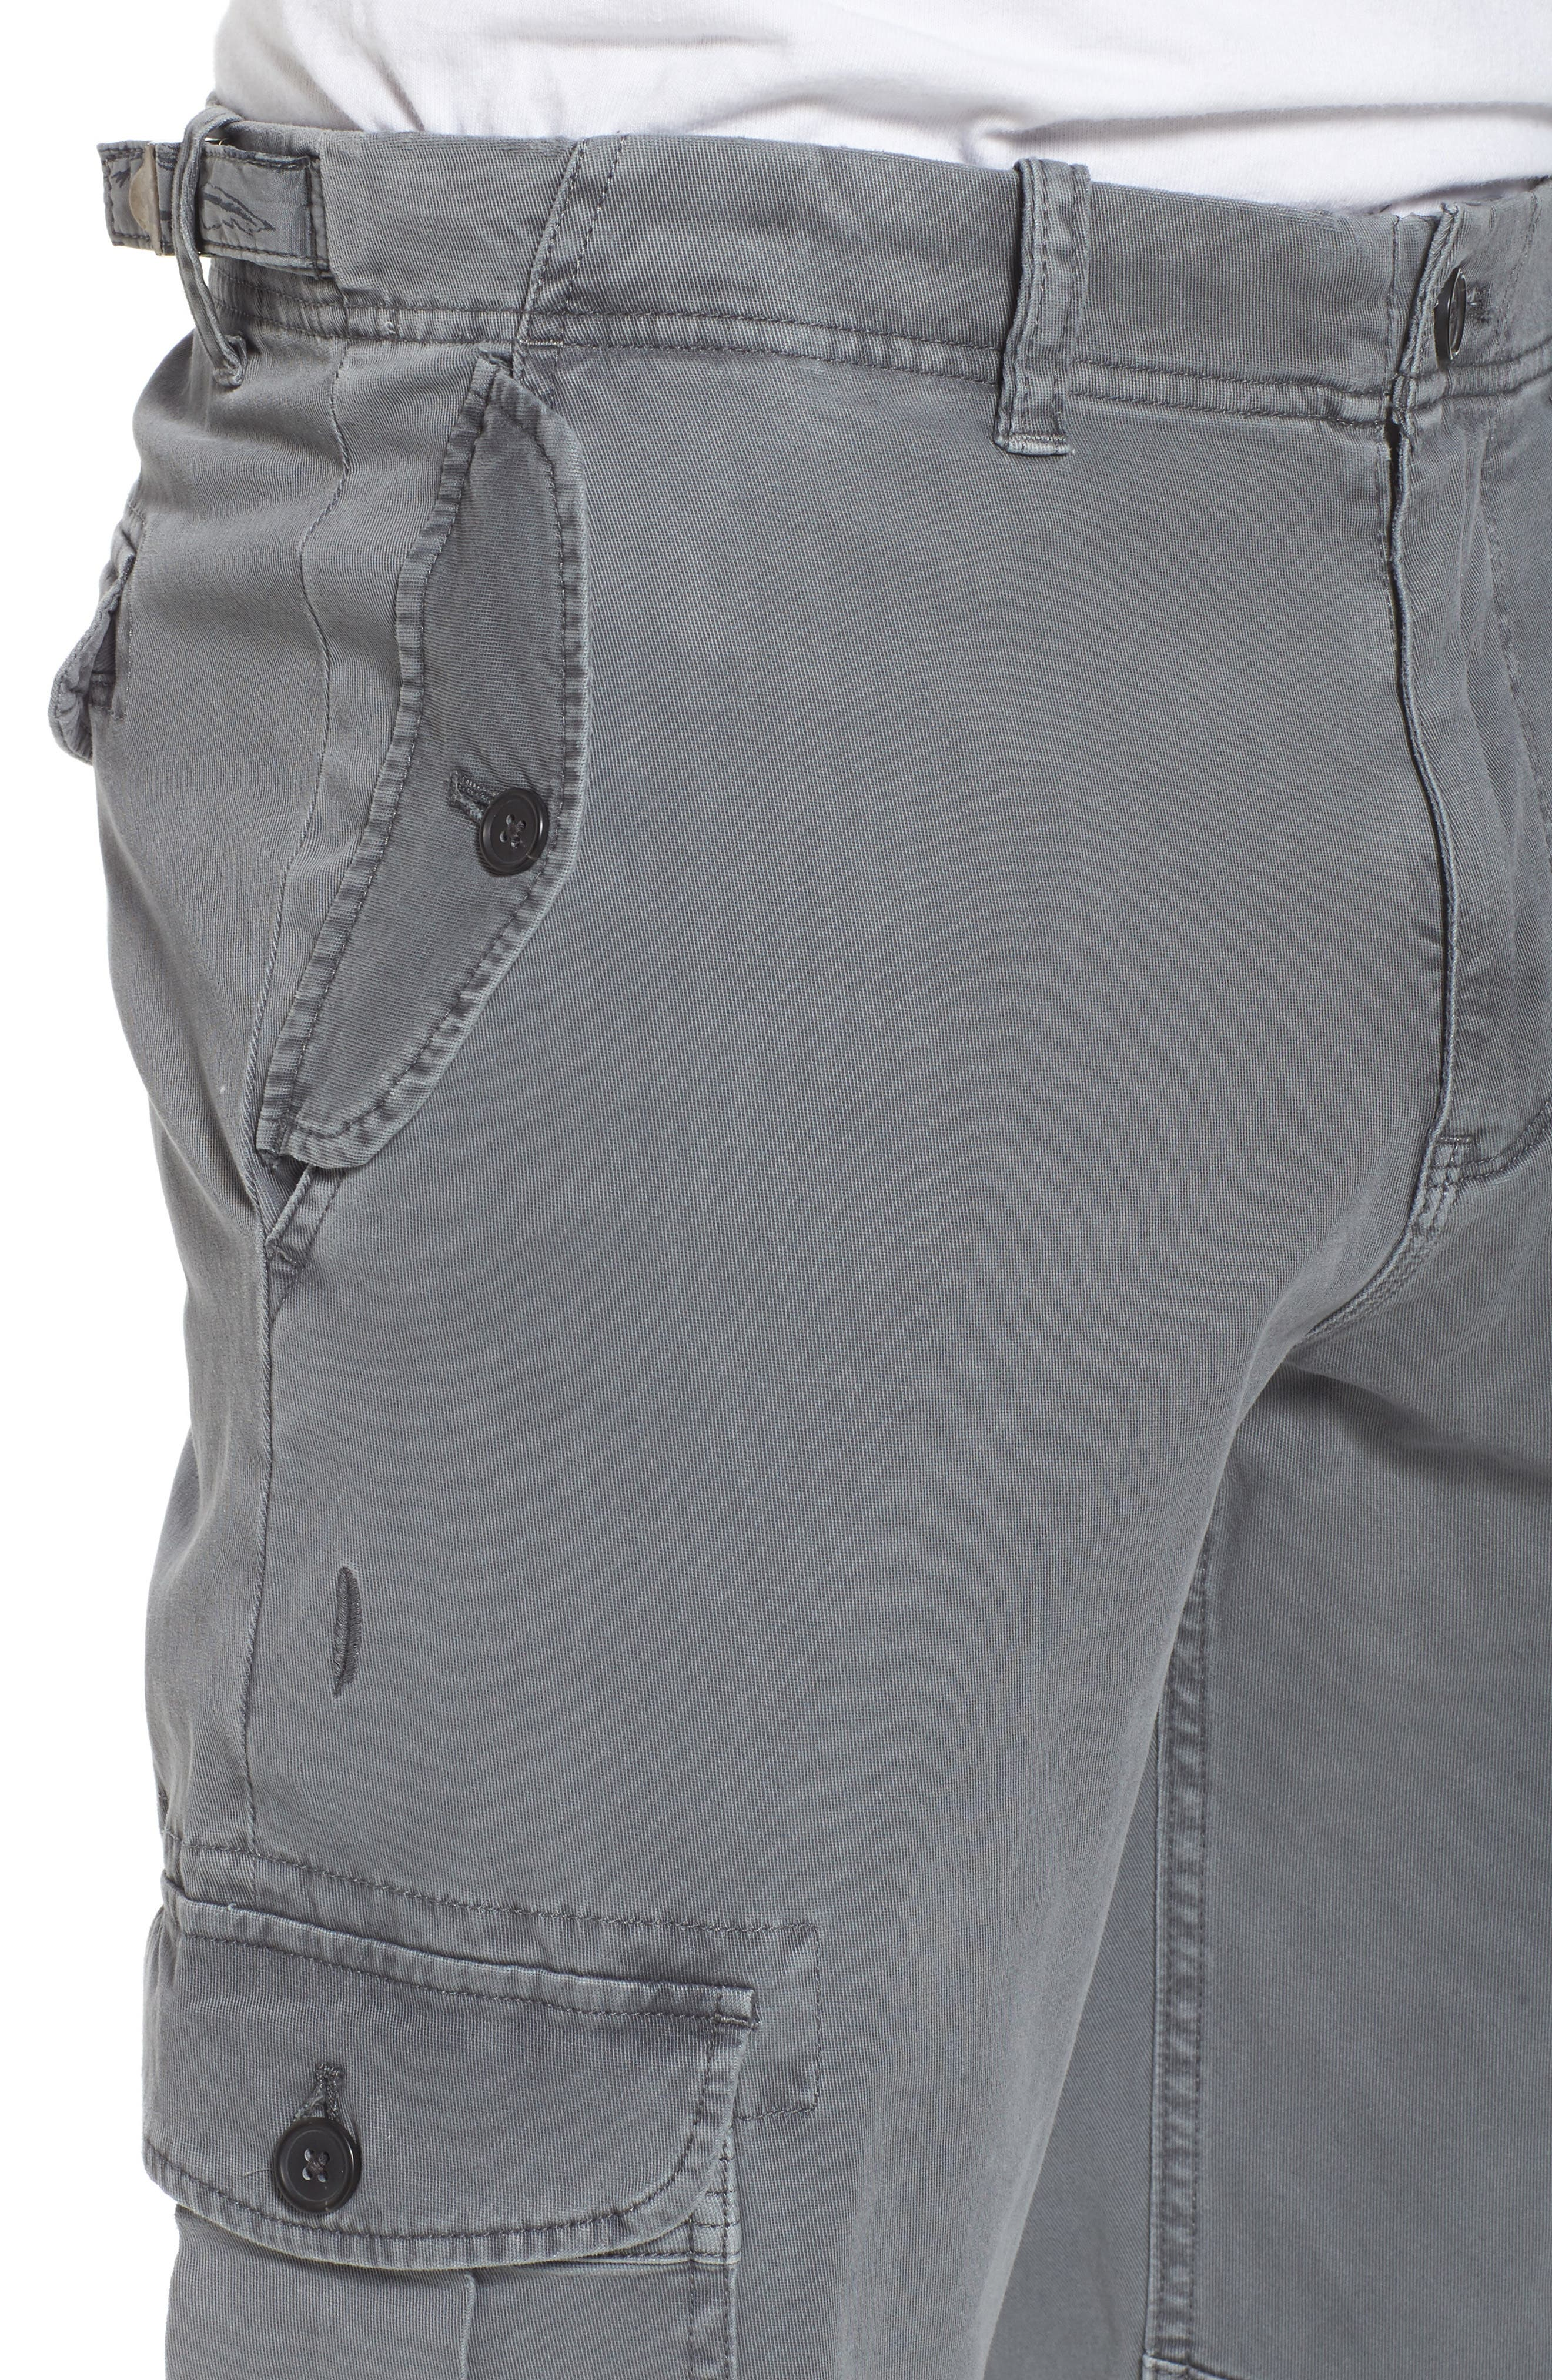 Stretch Twill Cargo Pants,                             Alternate thumbnail 4, color,                             033